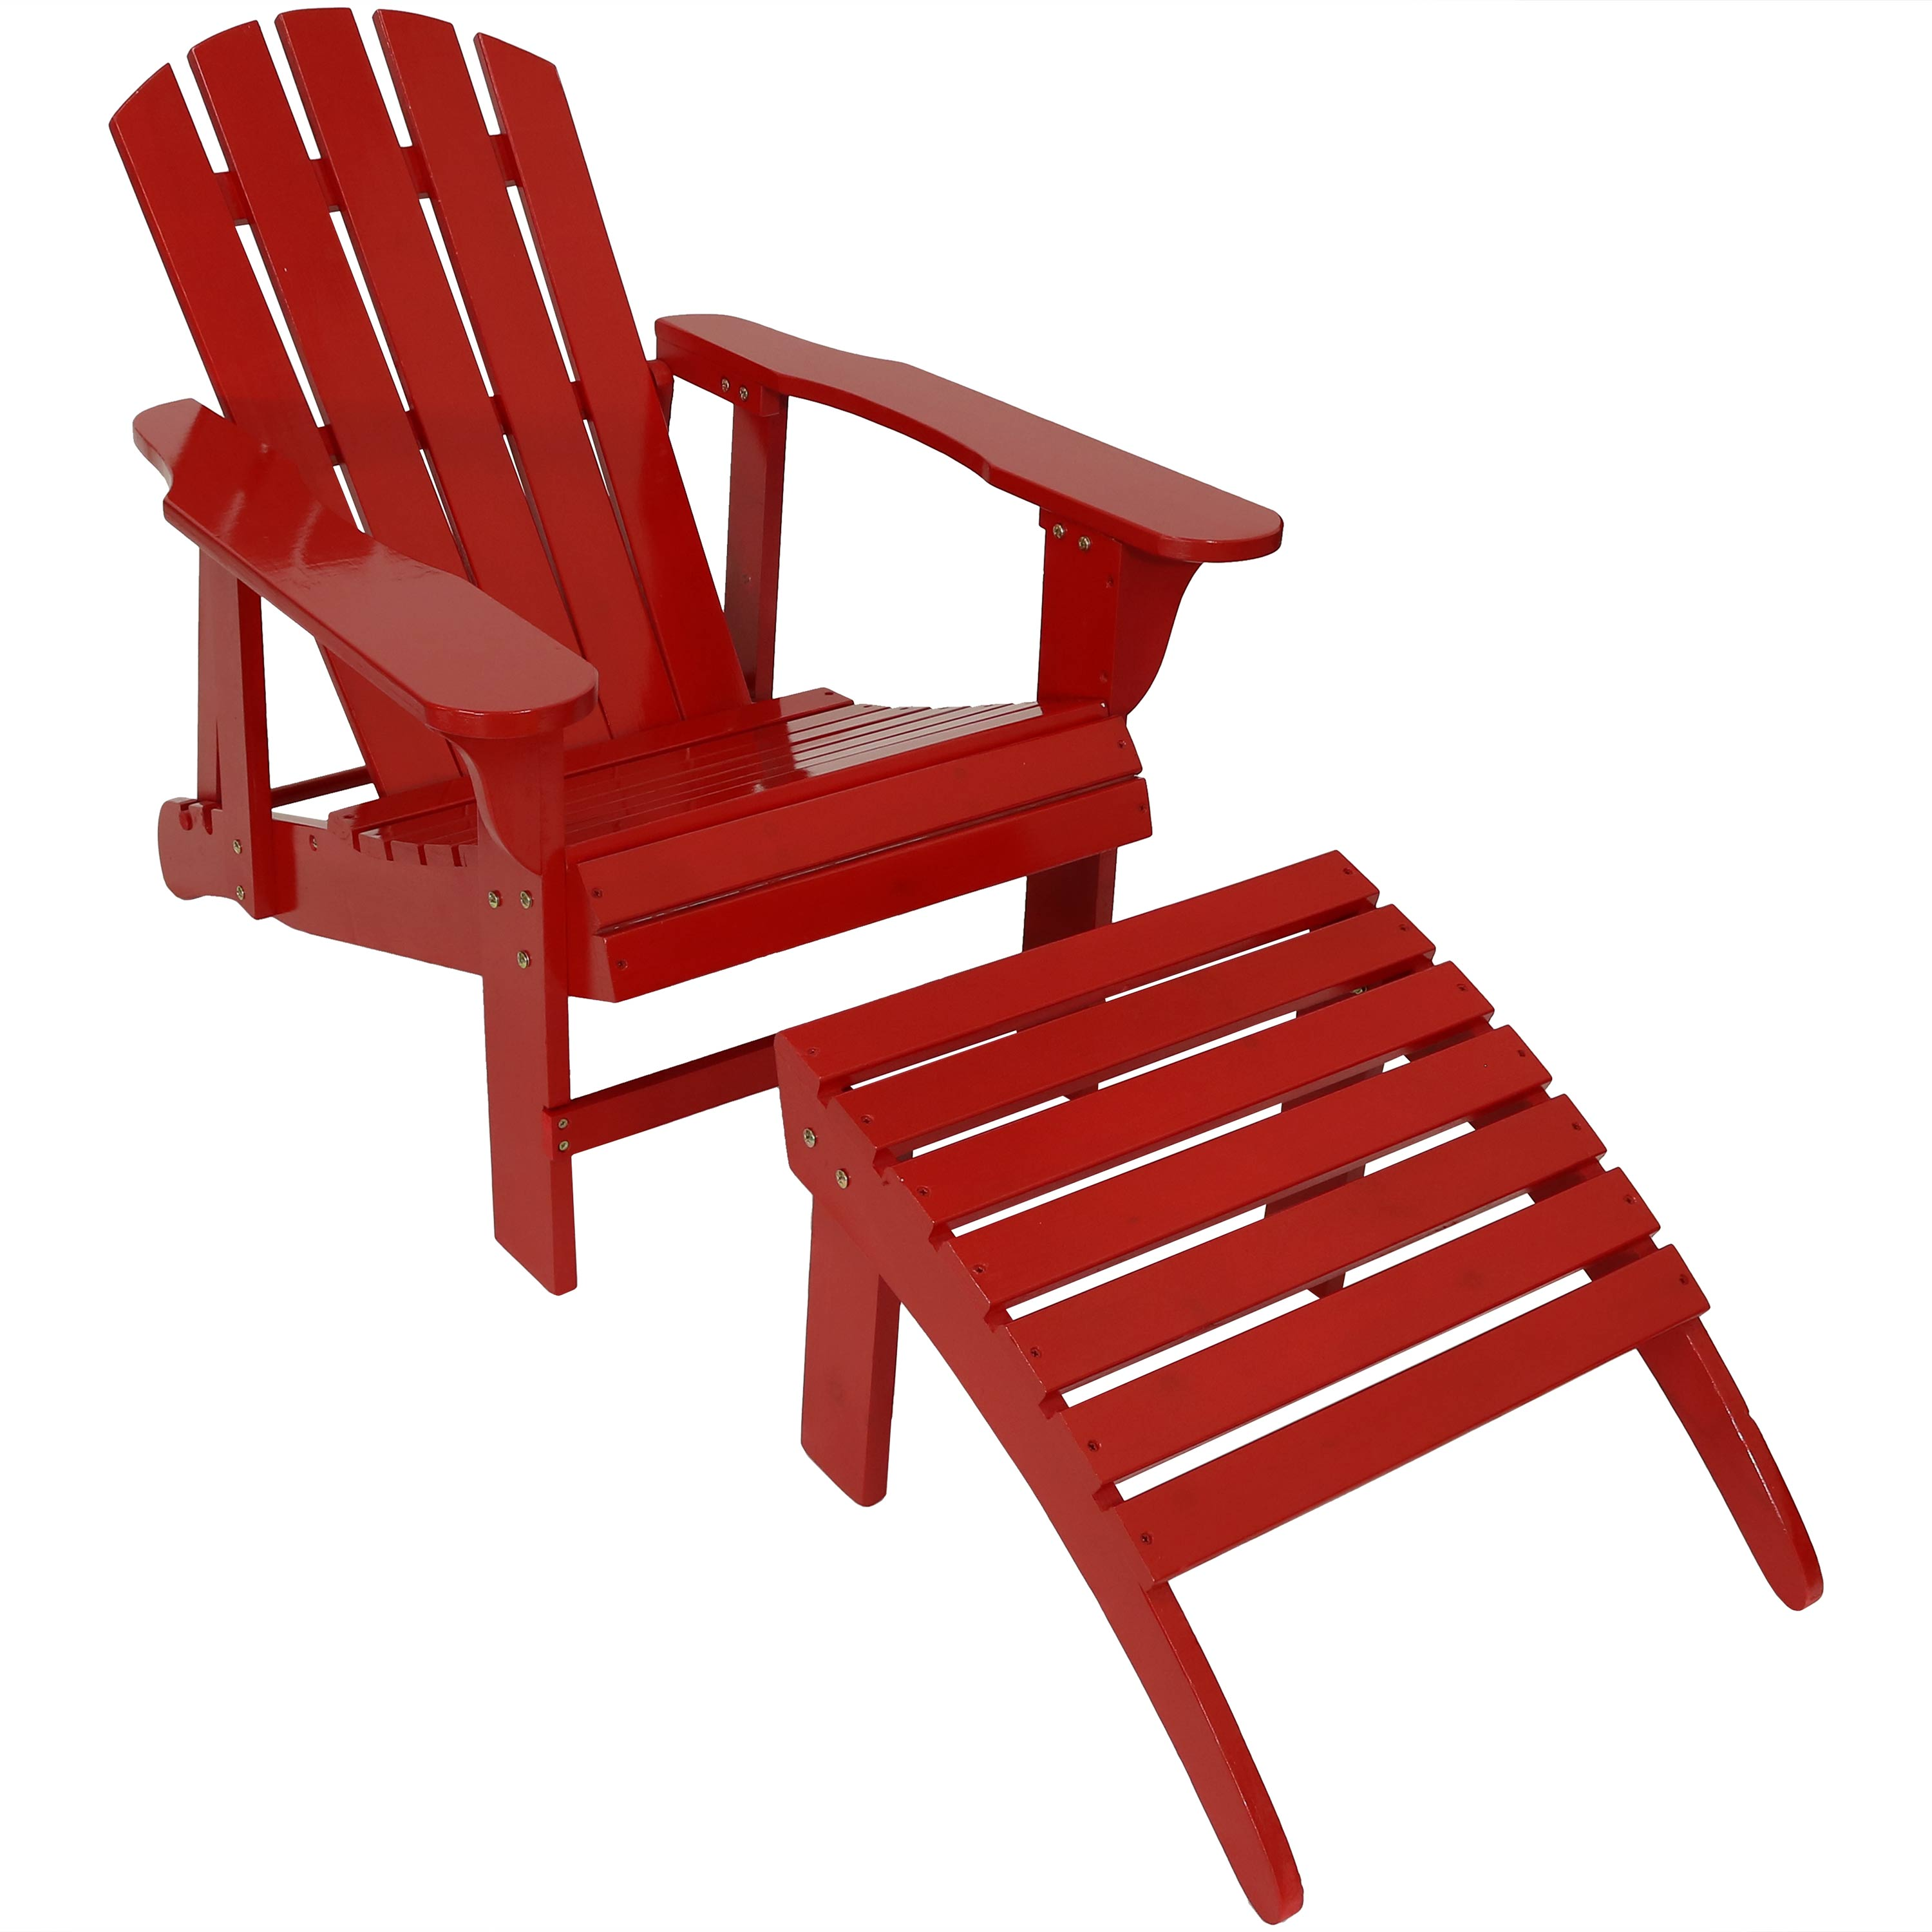 Red Adirondack Chairs Sunnydaze Wooden Outdoor Adirondack Chair With Adjustable Backrest And Ottoman Set Choose Color Option